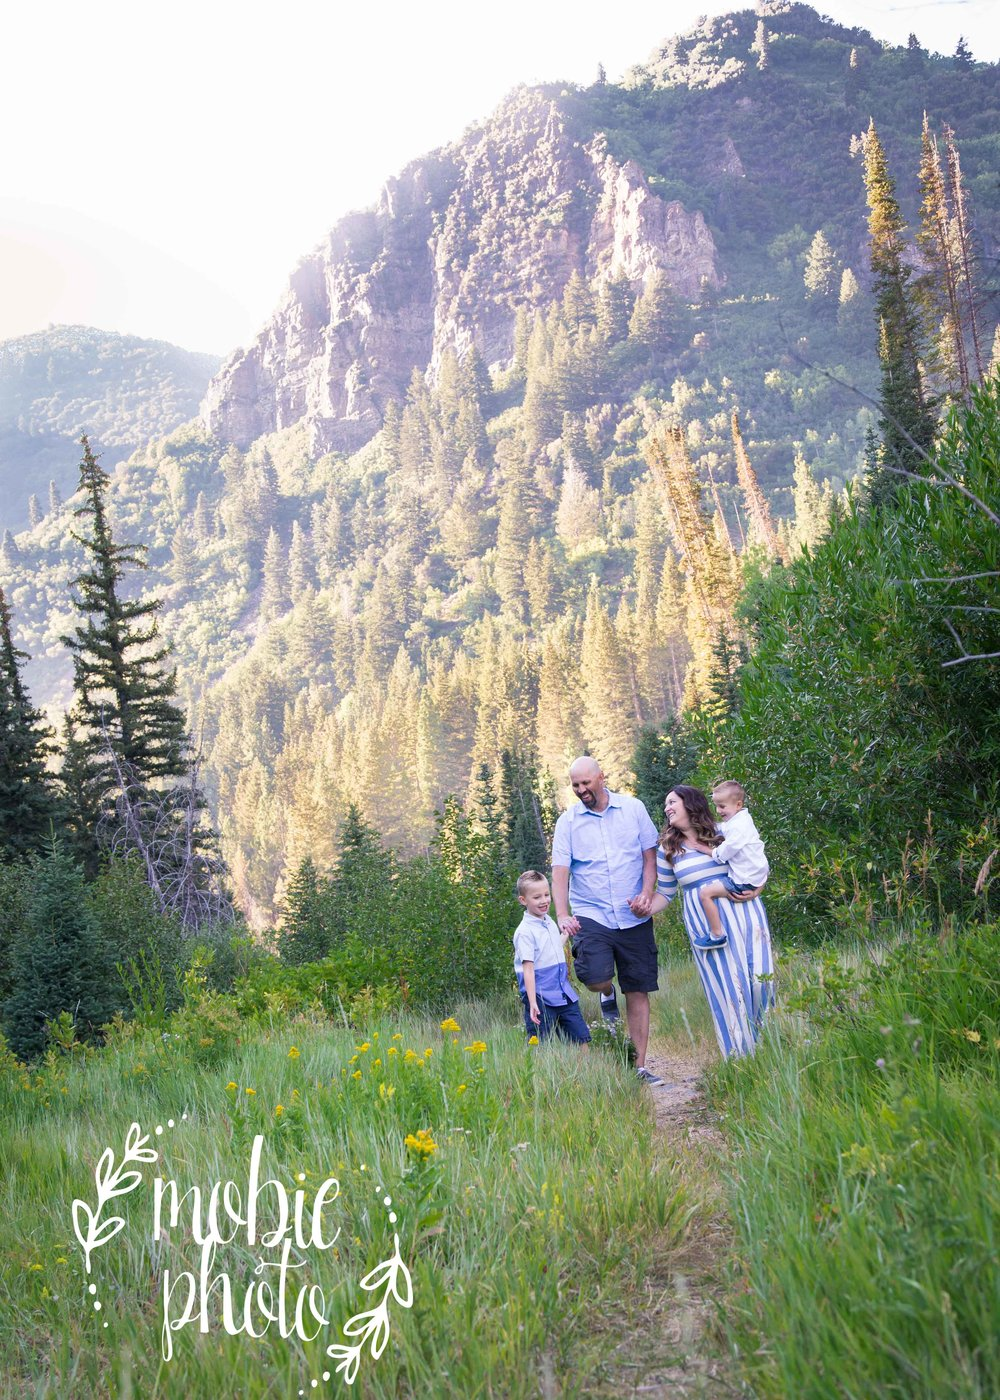 Mobie Photo - Salt Lake City Photographer - Big Cottonwood Canyon, August 2016